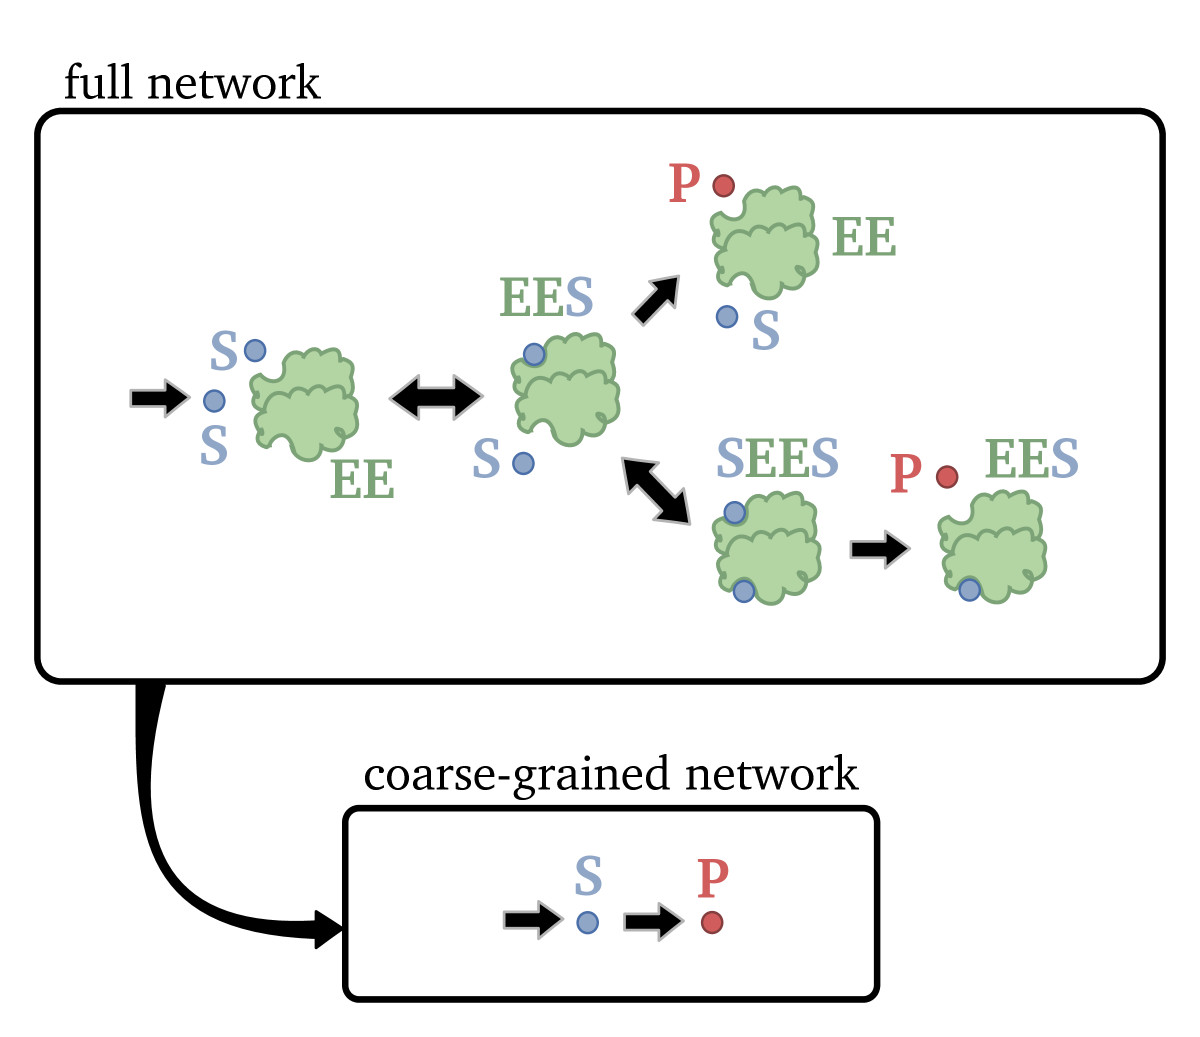 https://static-content.springer.com/image/art%3A10.1186%2F1752-0509-6-39/MediaObjects/12918_2011_Article_1013_Fig3_HTML.jpg